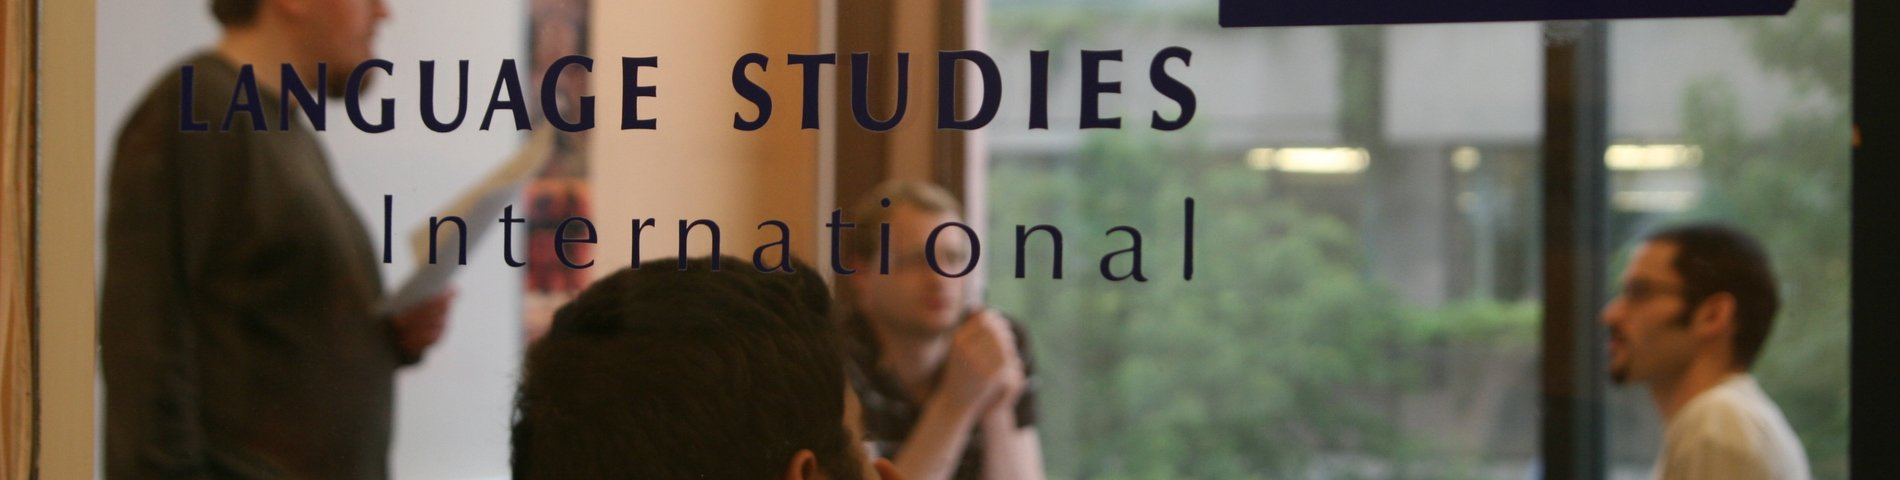 Imatge 1 de l'escola LSI - Language Studies International